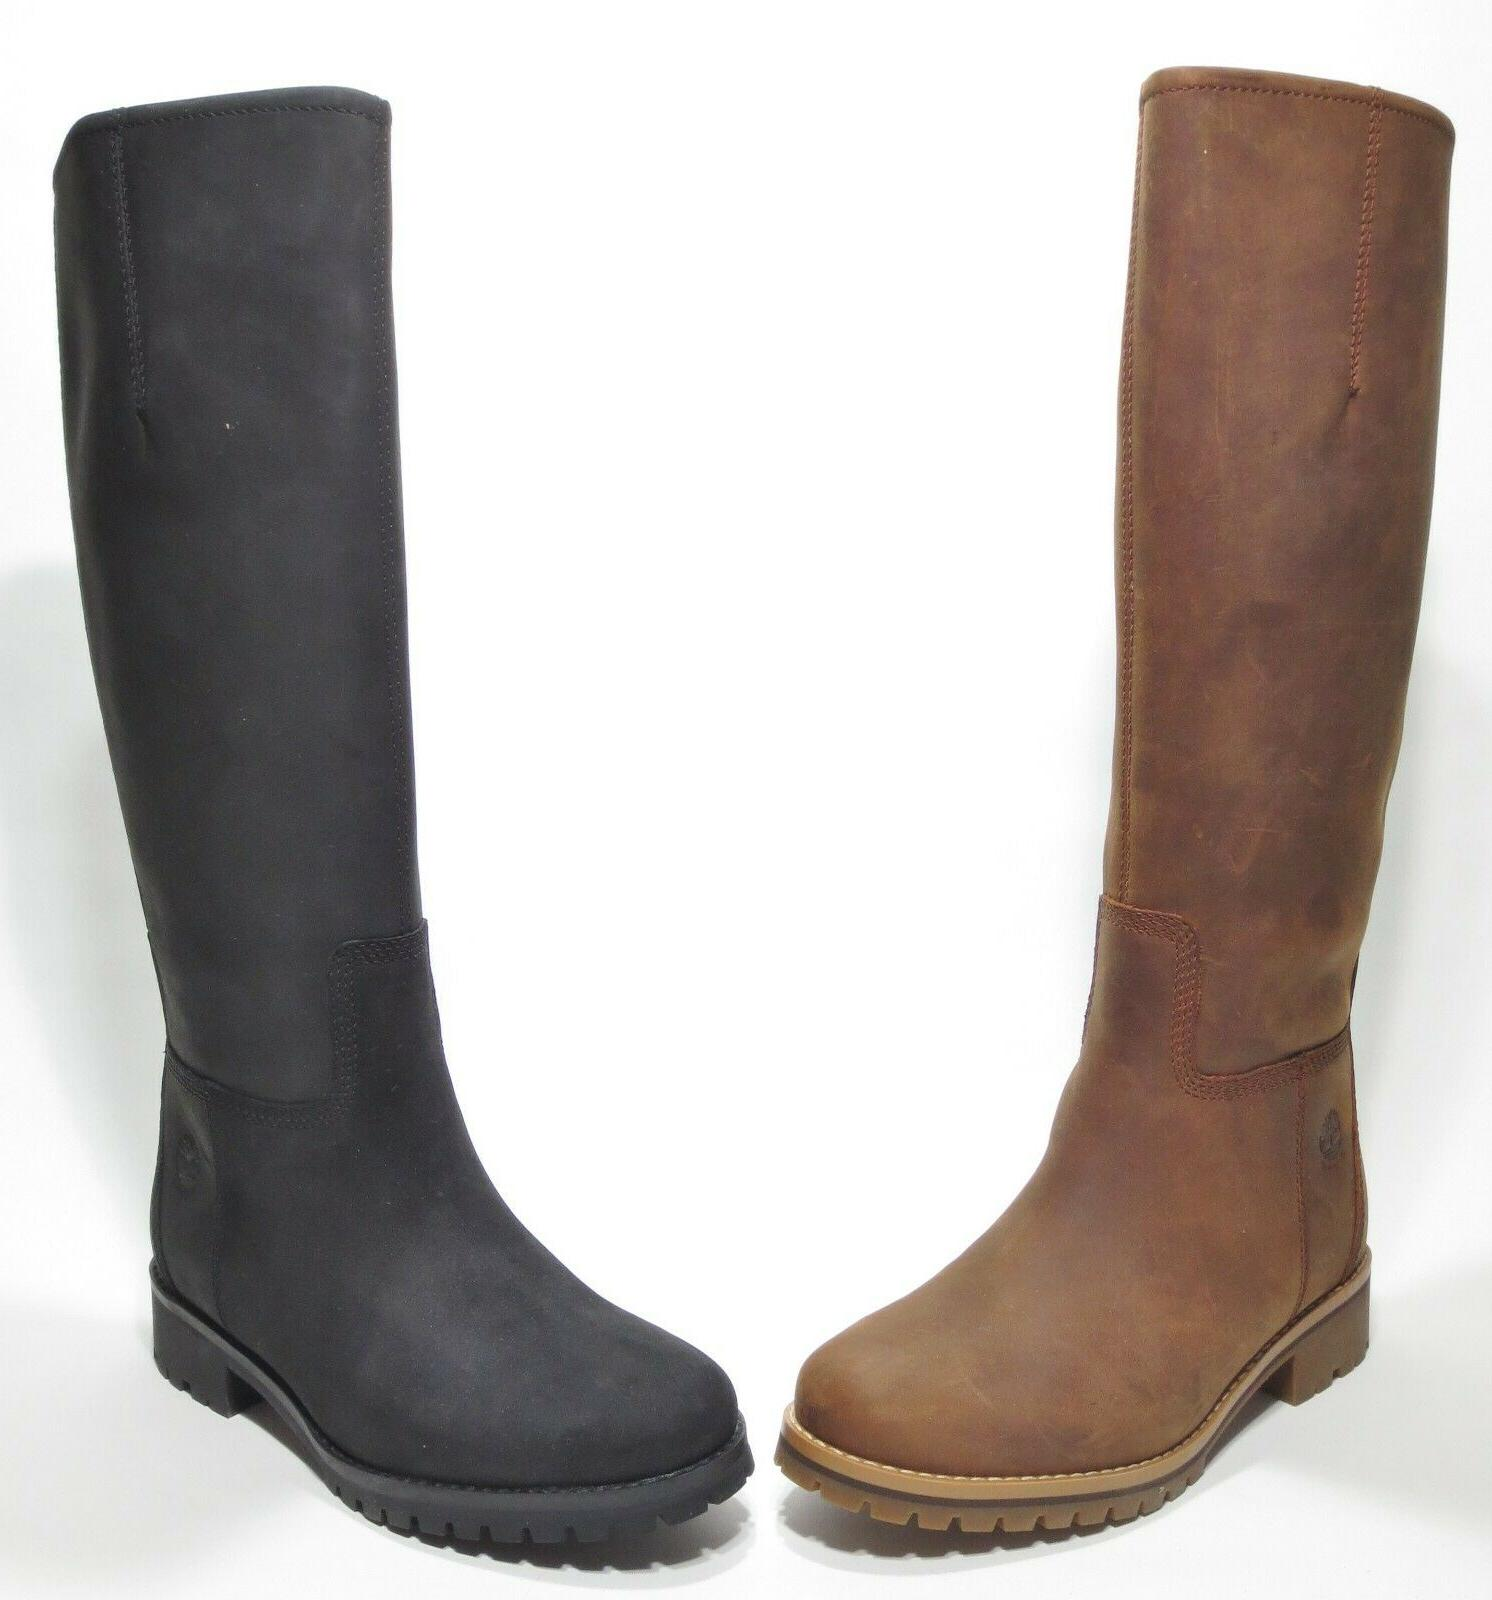 Hill Premium Leather Tall Boots